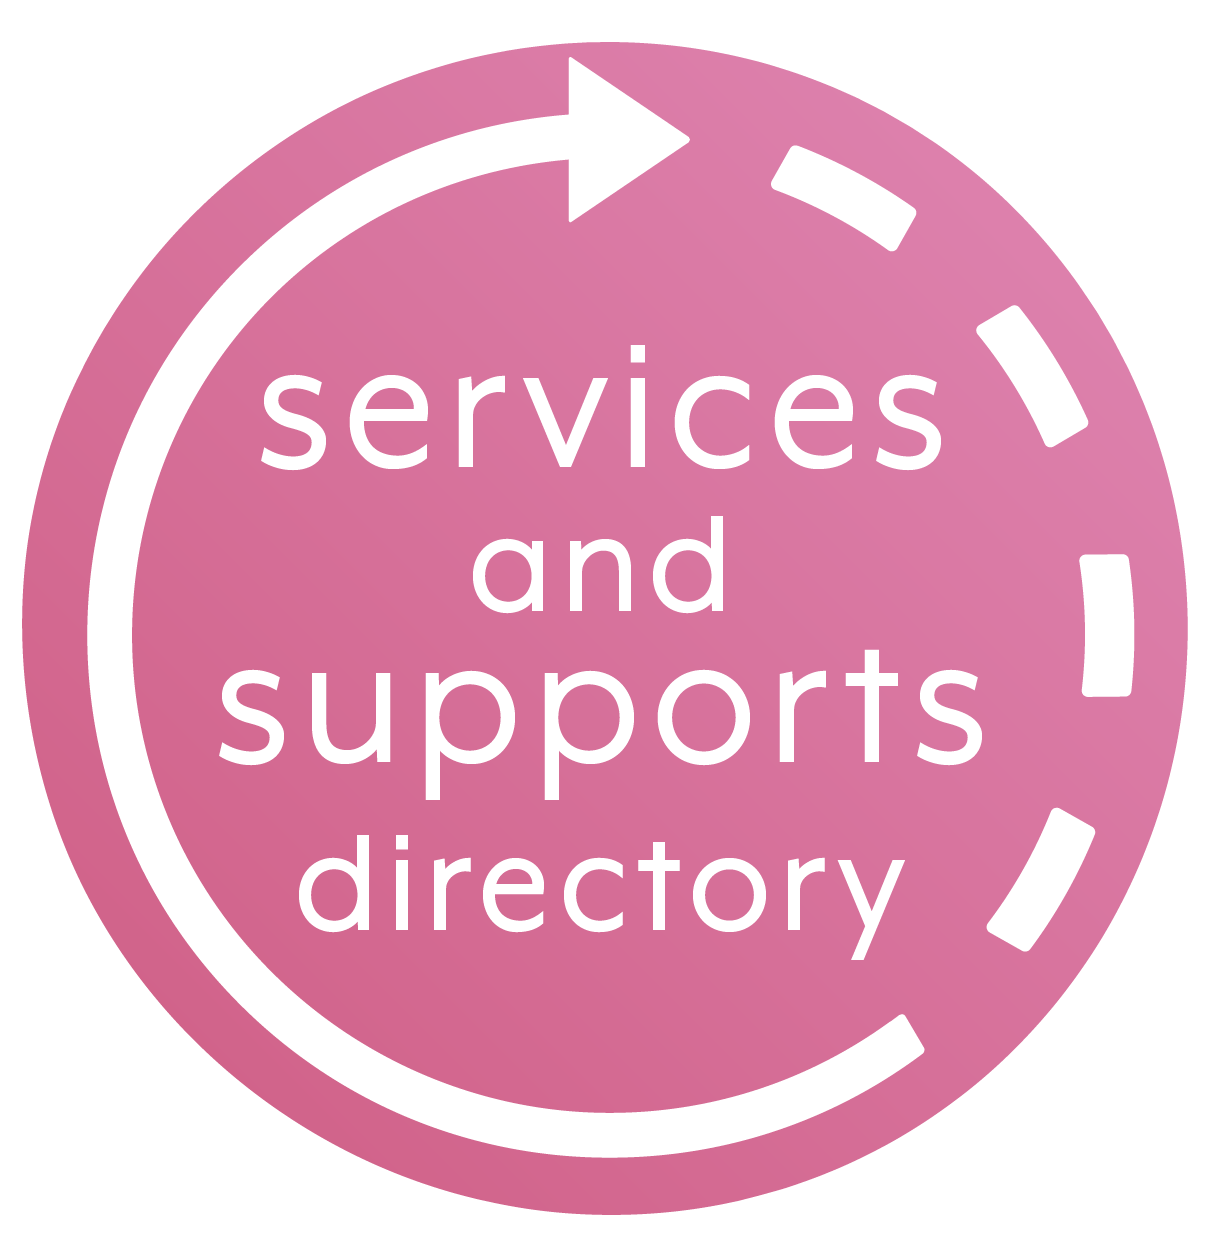 Link to Services and Supports Directory